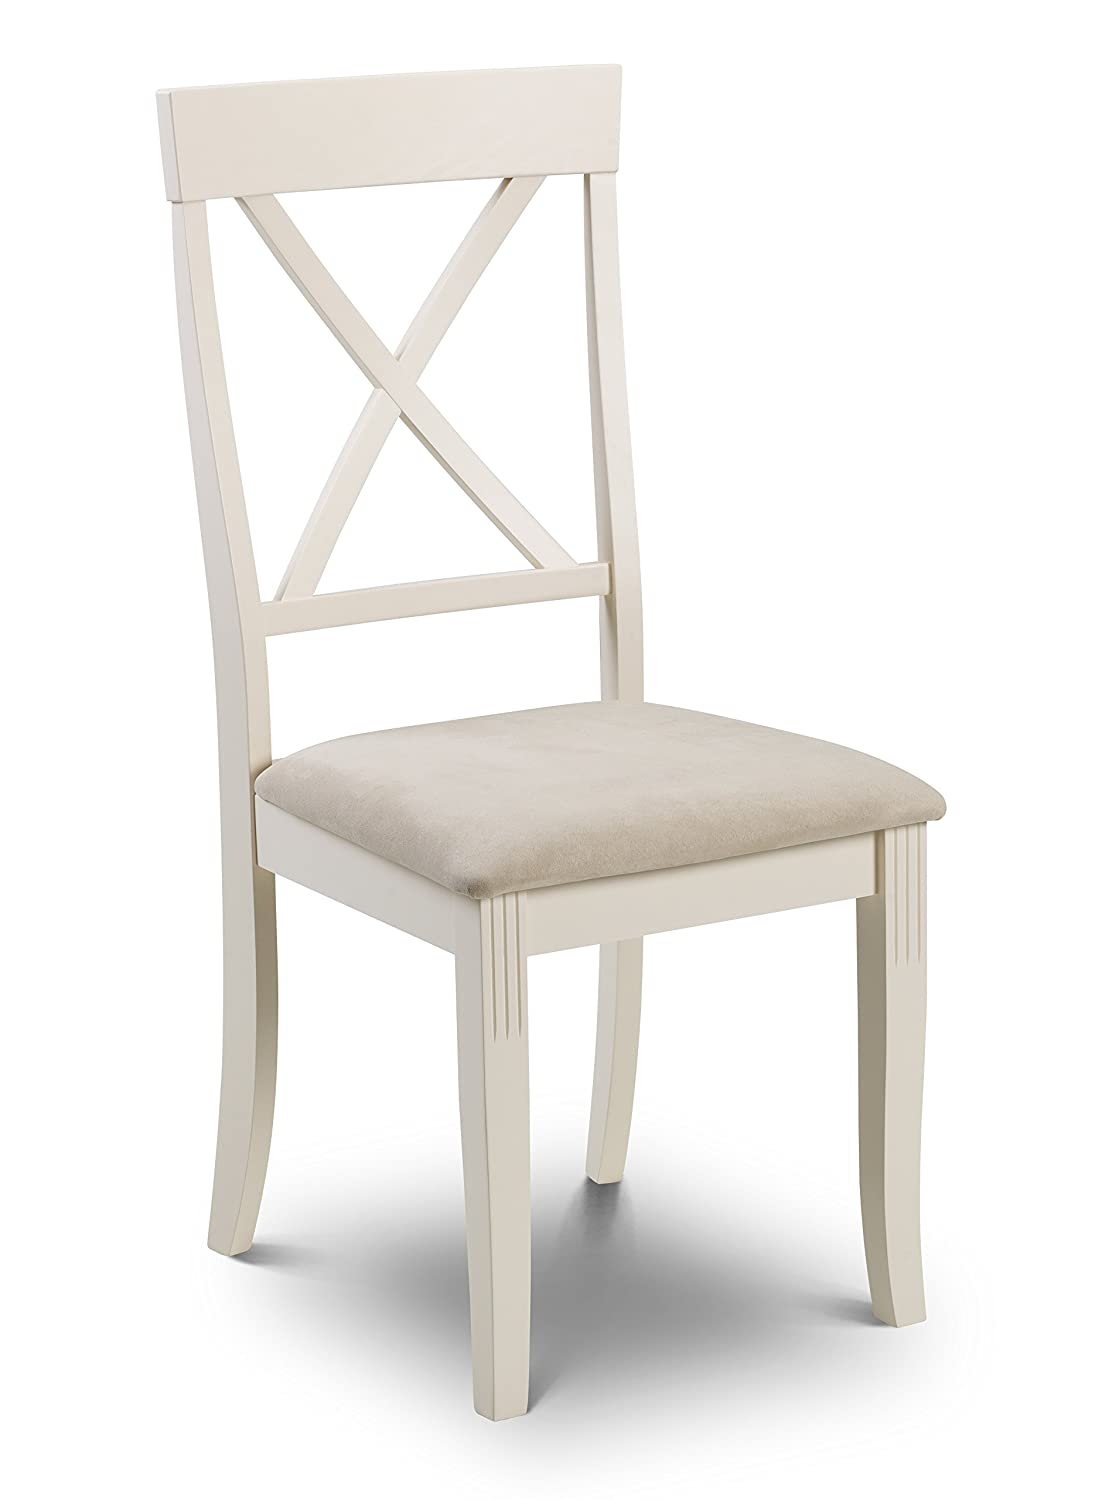 leather restaurant chairs. Julian Bowen Davenport Dining Chairs, Wood, Ivory, Set Of 2 Leather Restaurant Chairs E